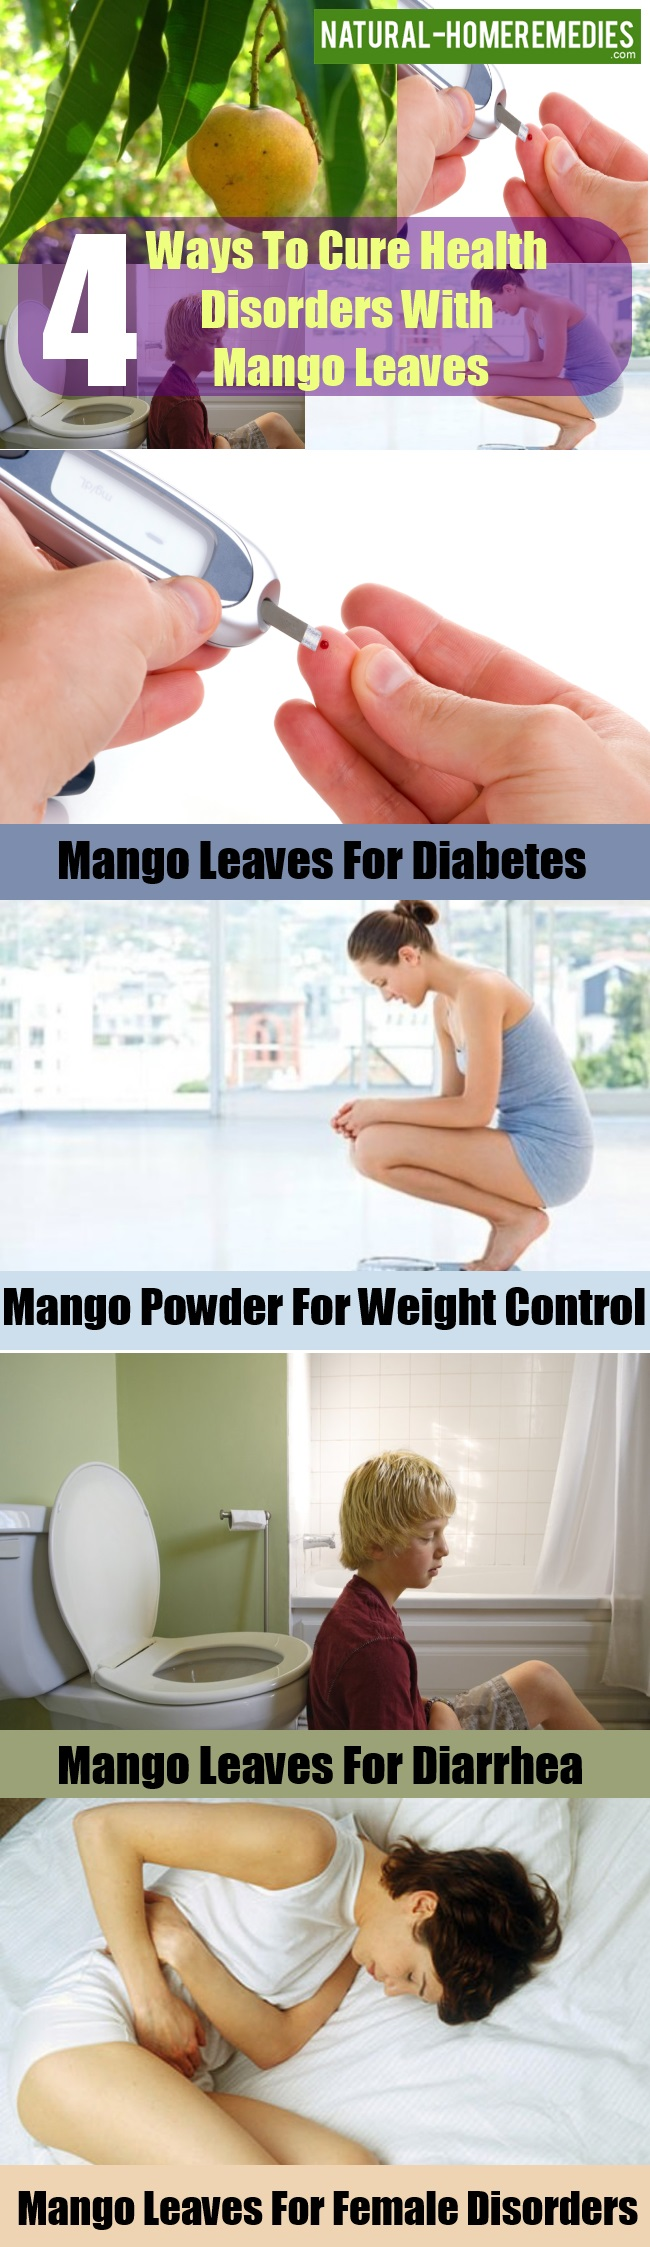 Ways To Cure Health Disorders With Mango Leaves